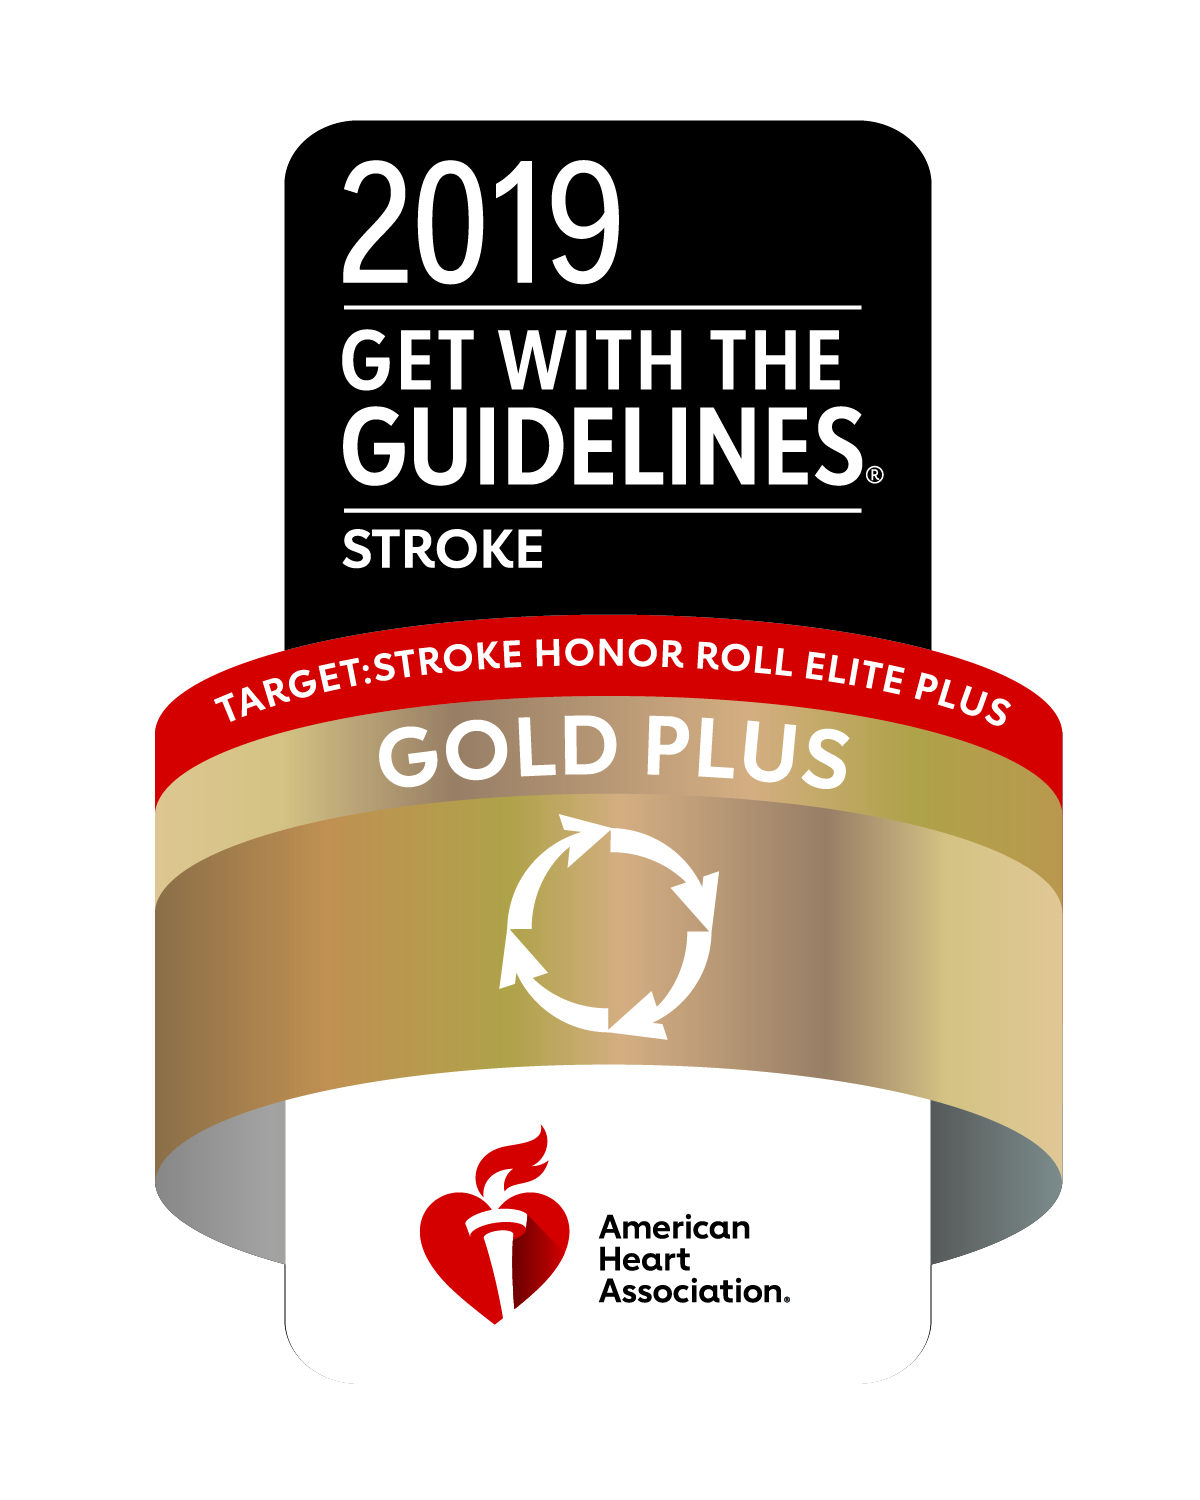 2019 Get with the Guidelines award logo